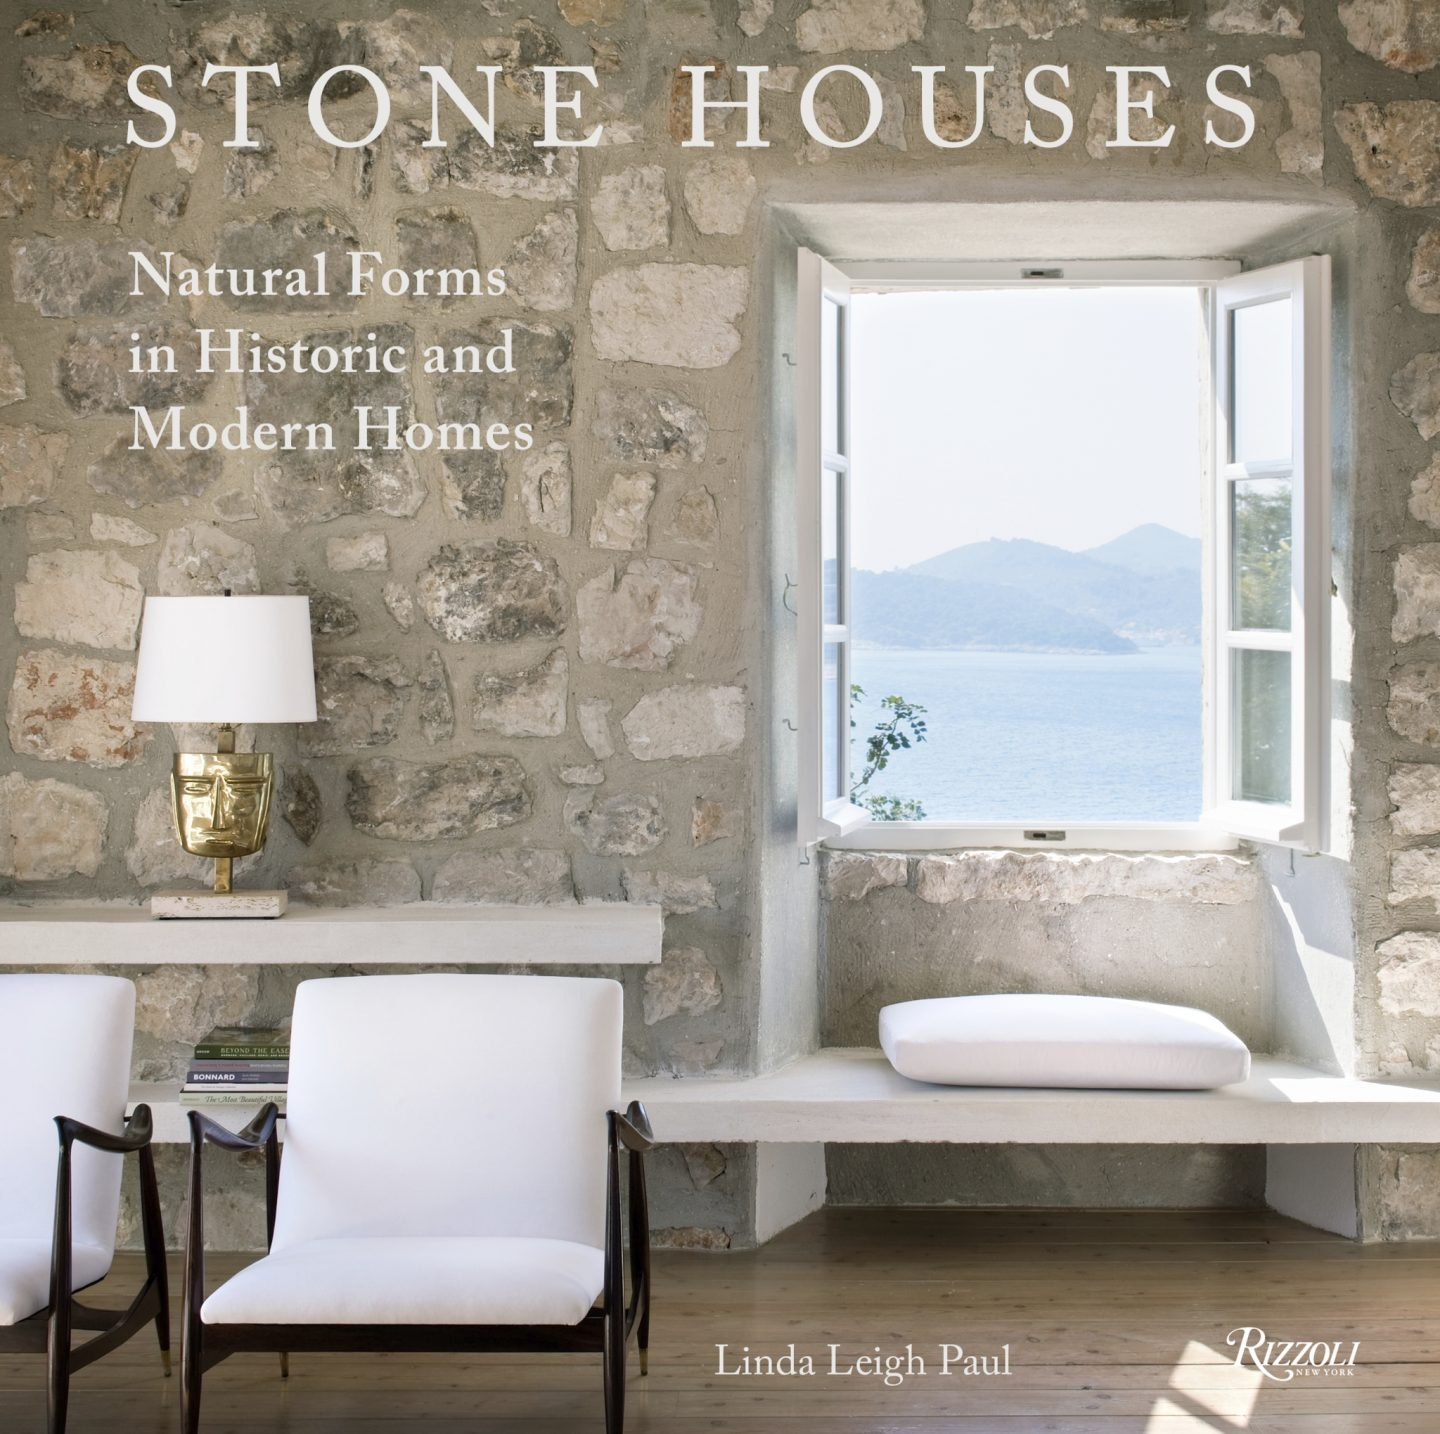 ©Stone Houses: Natural Forms in Historic and Modern Homes by Linda Leigh Paul, Rizzoli New York, 2018